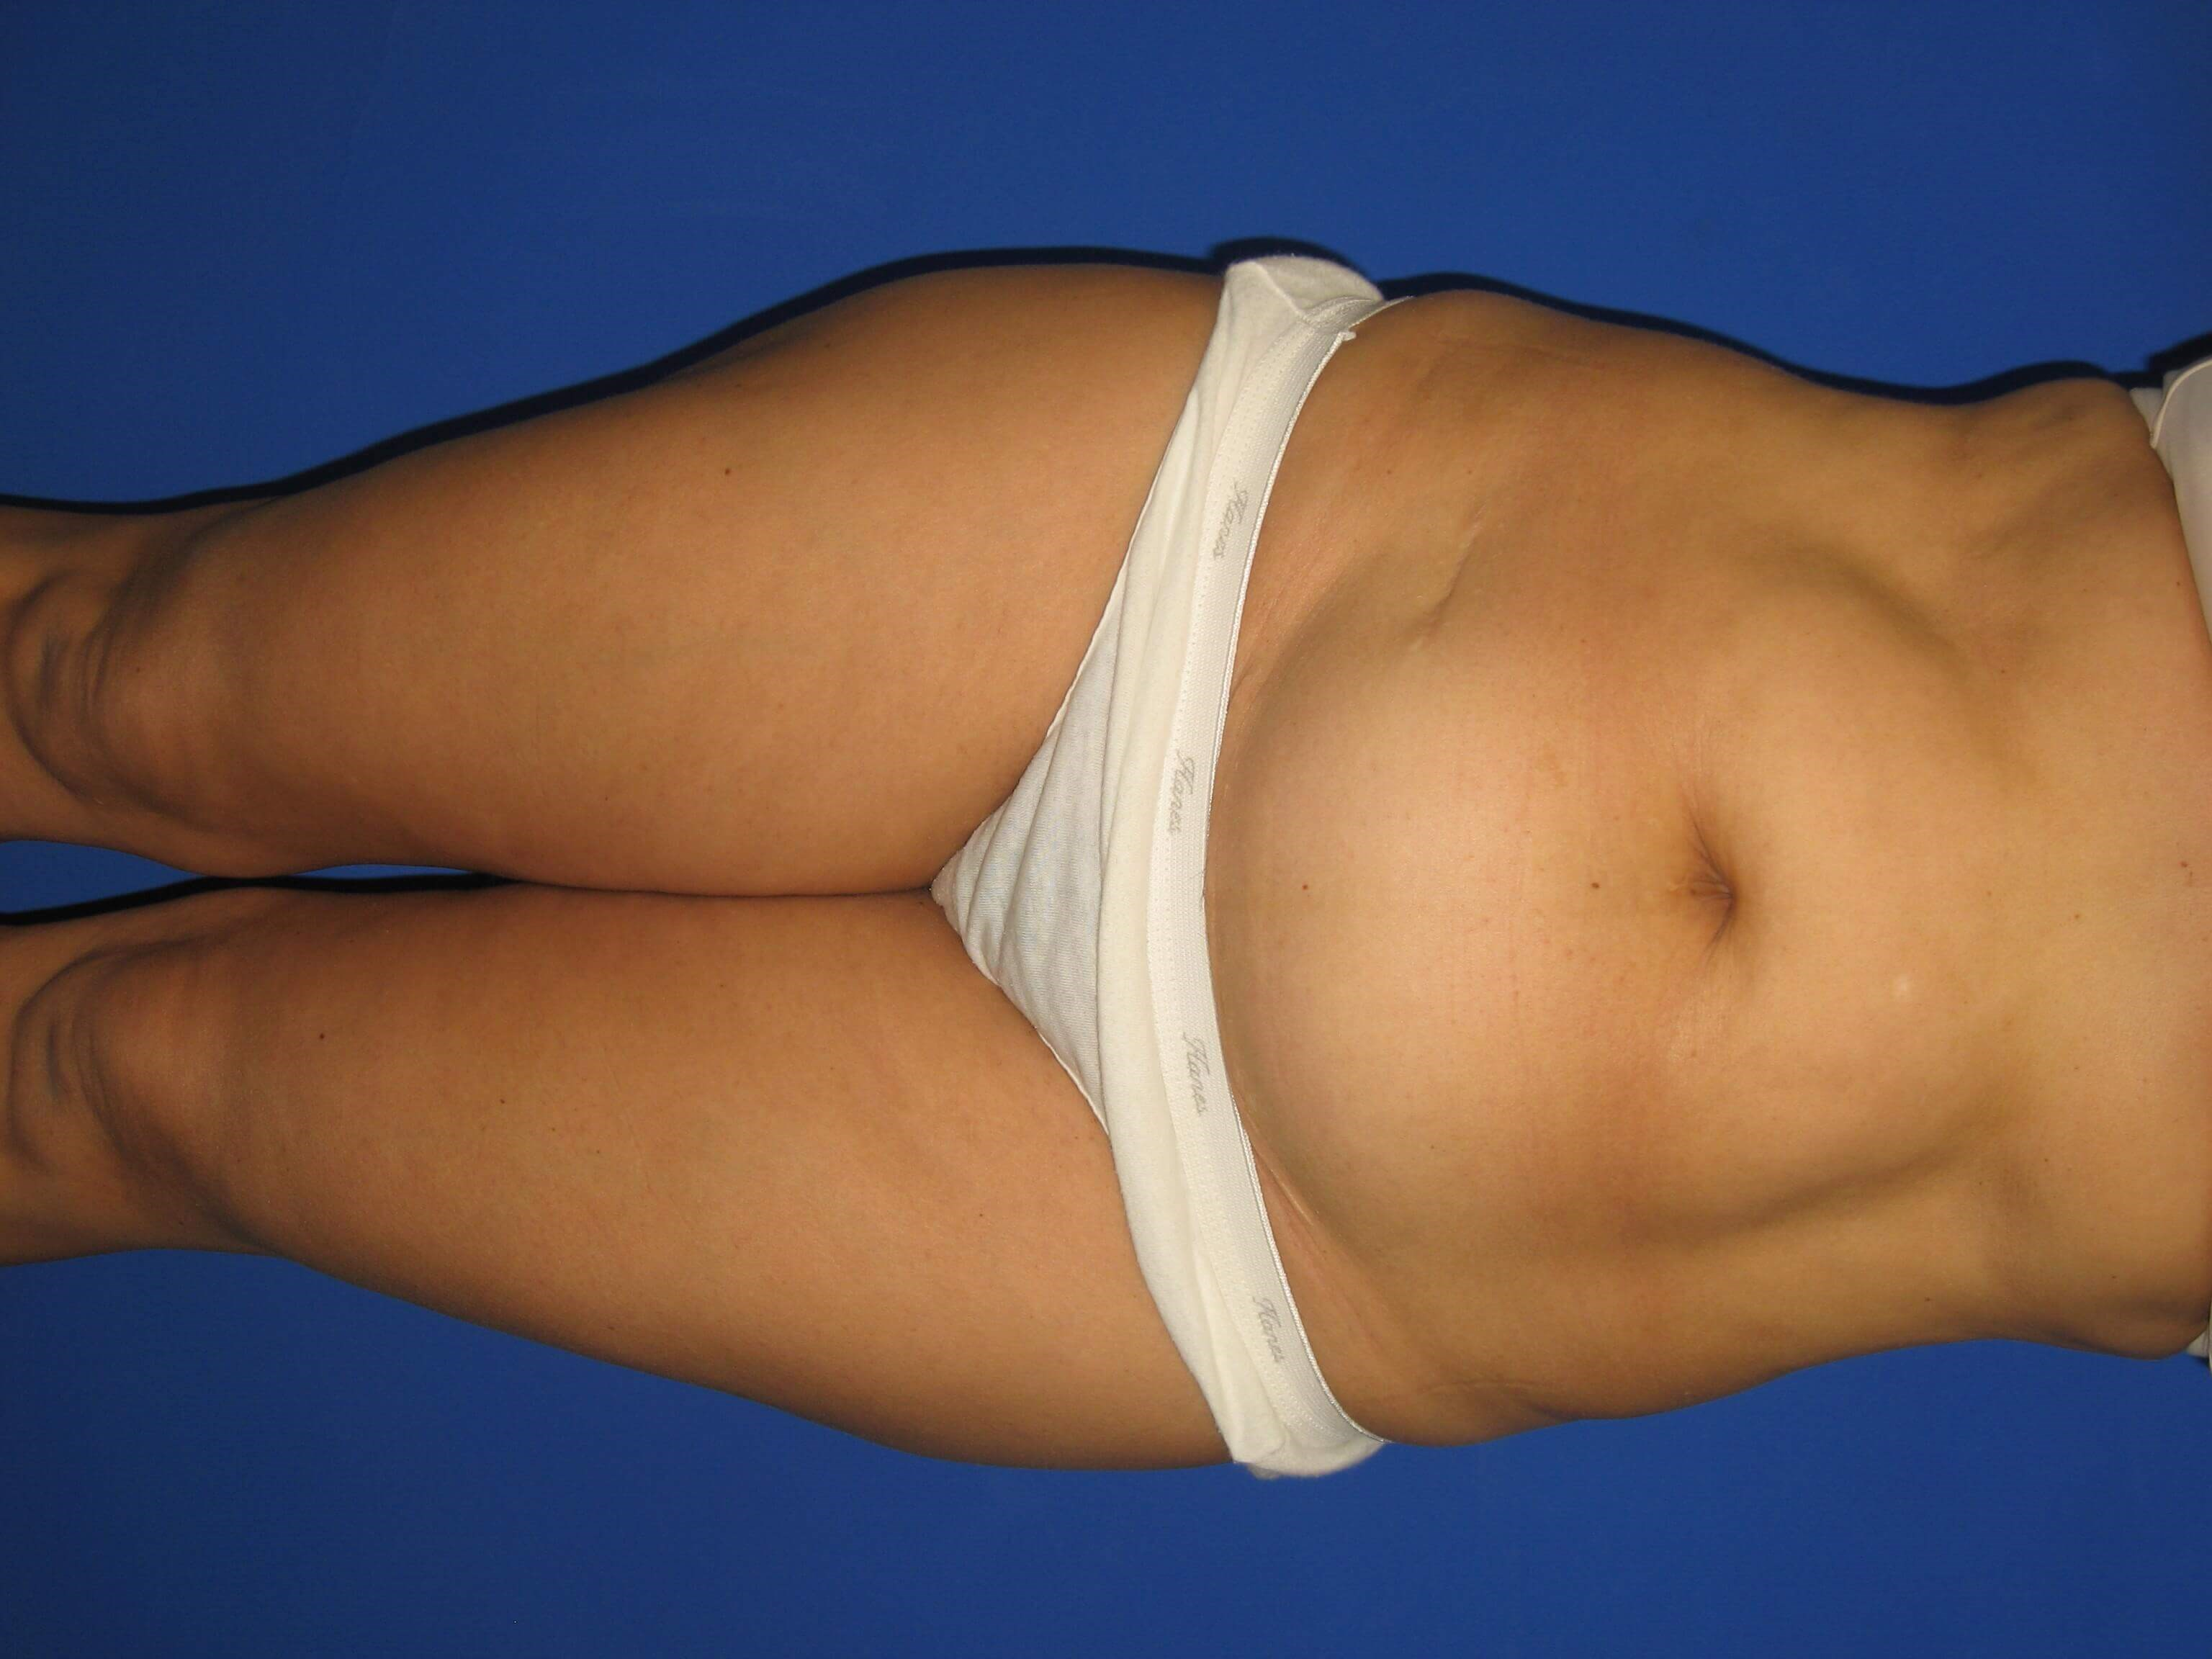 Tummy Tuck Views Before